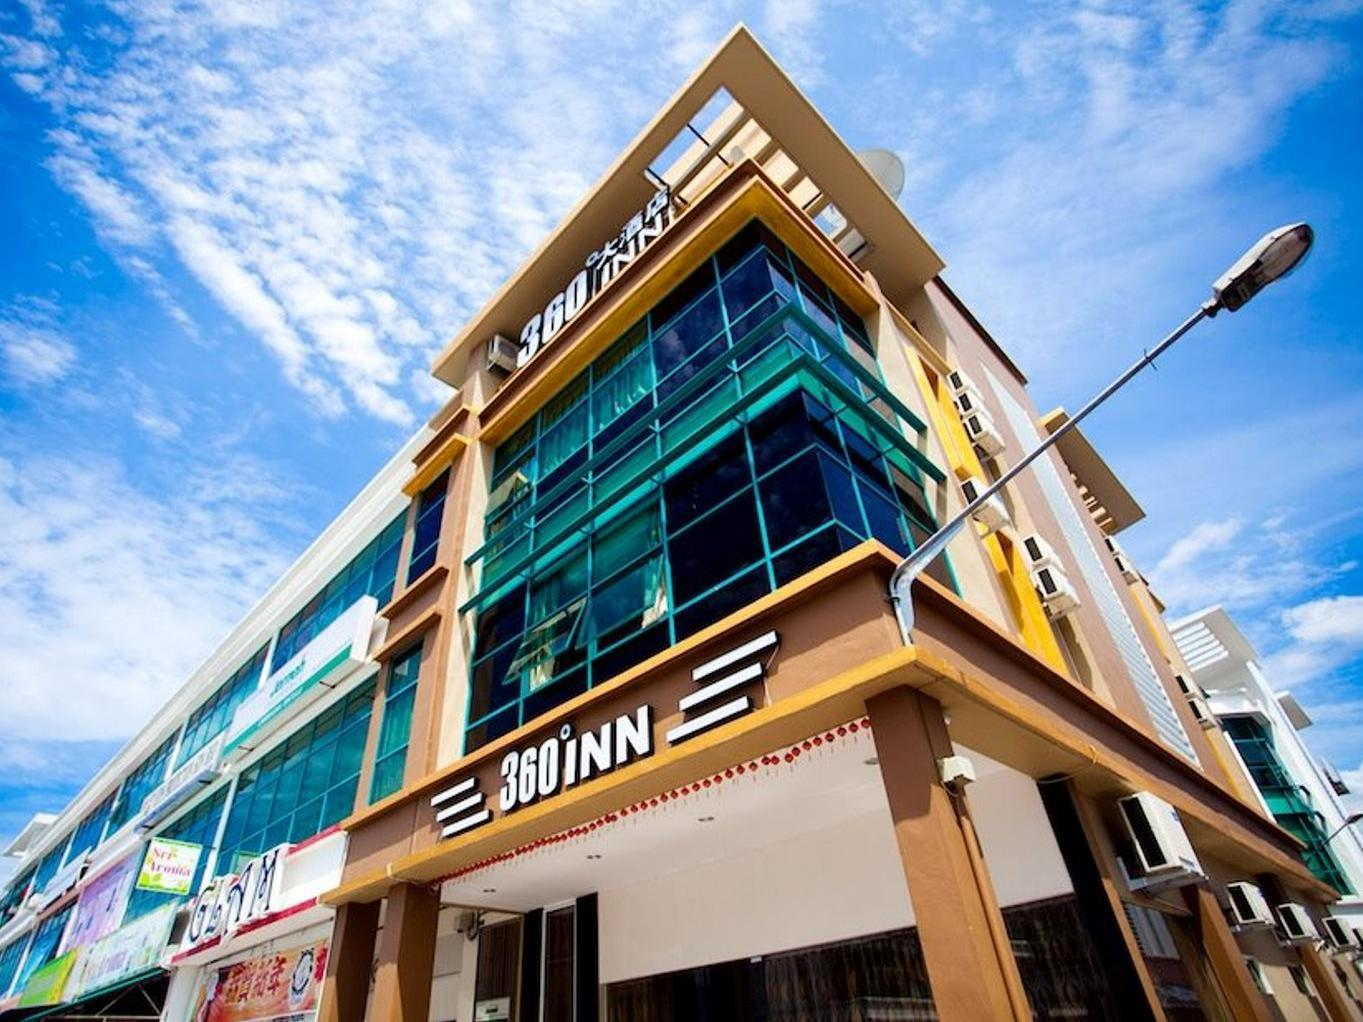 360 Inn - Hotels and Accommodation in Malaysia, Asia